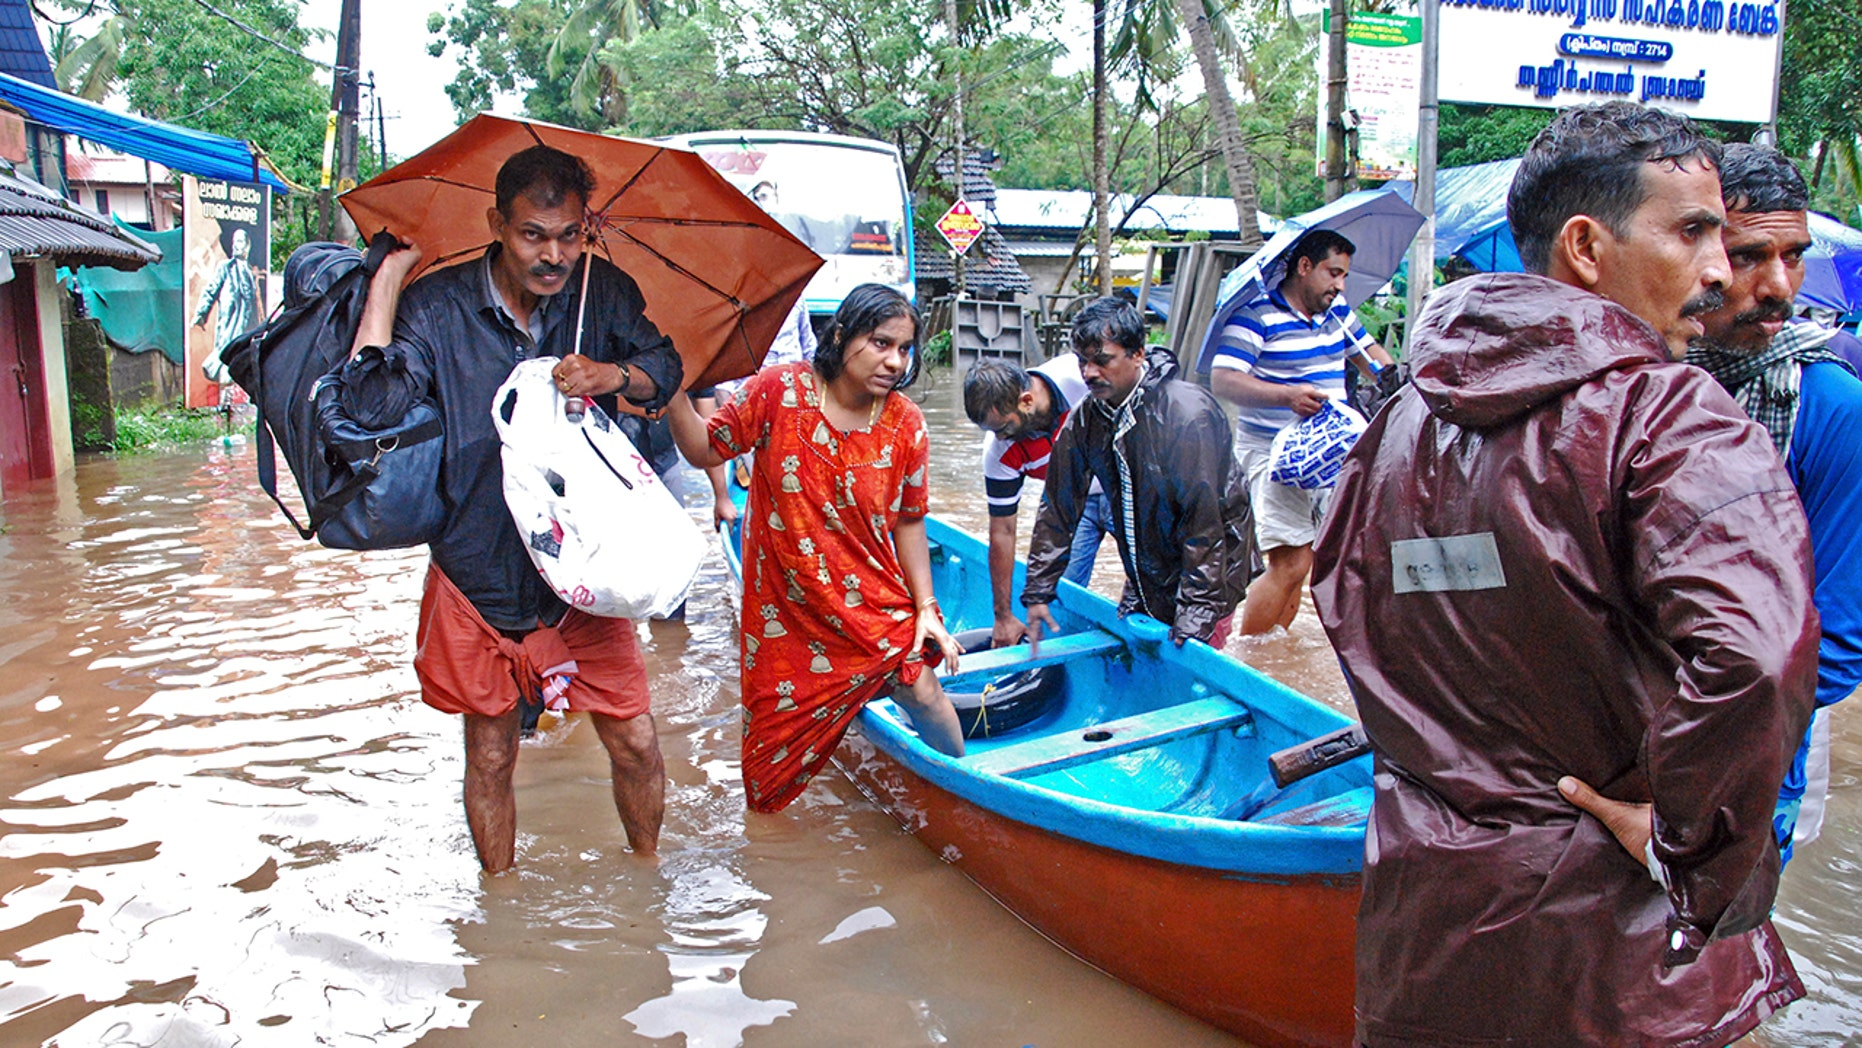 Flood victims are evacuated to safer areas in Kozhikode, in the southern Indian state of Kerala, Thursday, Aug. 16, 2018. Torrential monsoon rains have disrupted air and train services in the southern Indian state of Kerala, where flooding, landslides and bridge collapses have killed dozens of people in the past week, officials said. (AP Photo/K. Shijith)